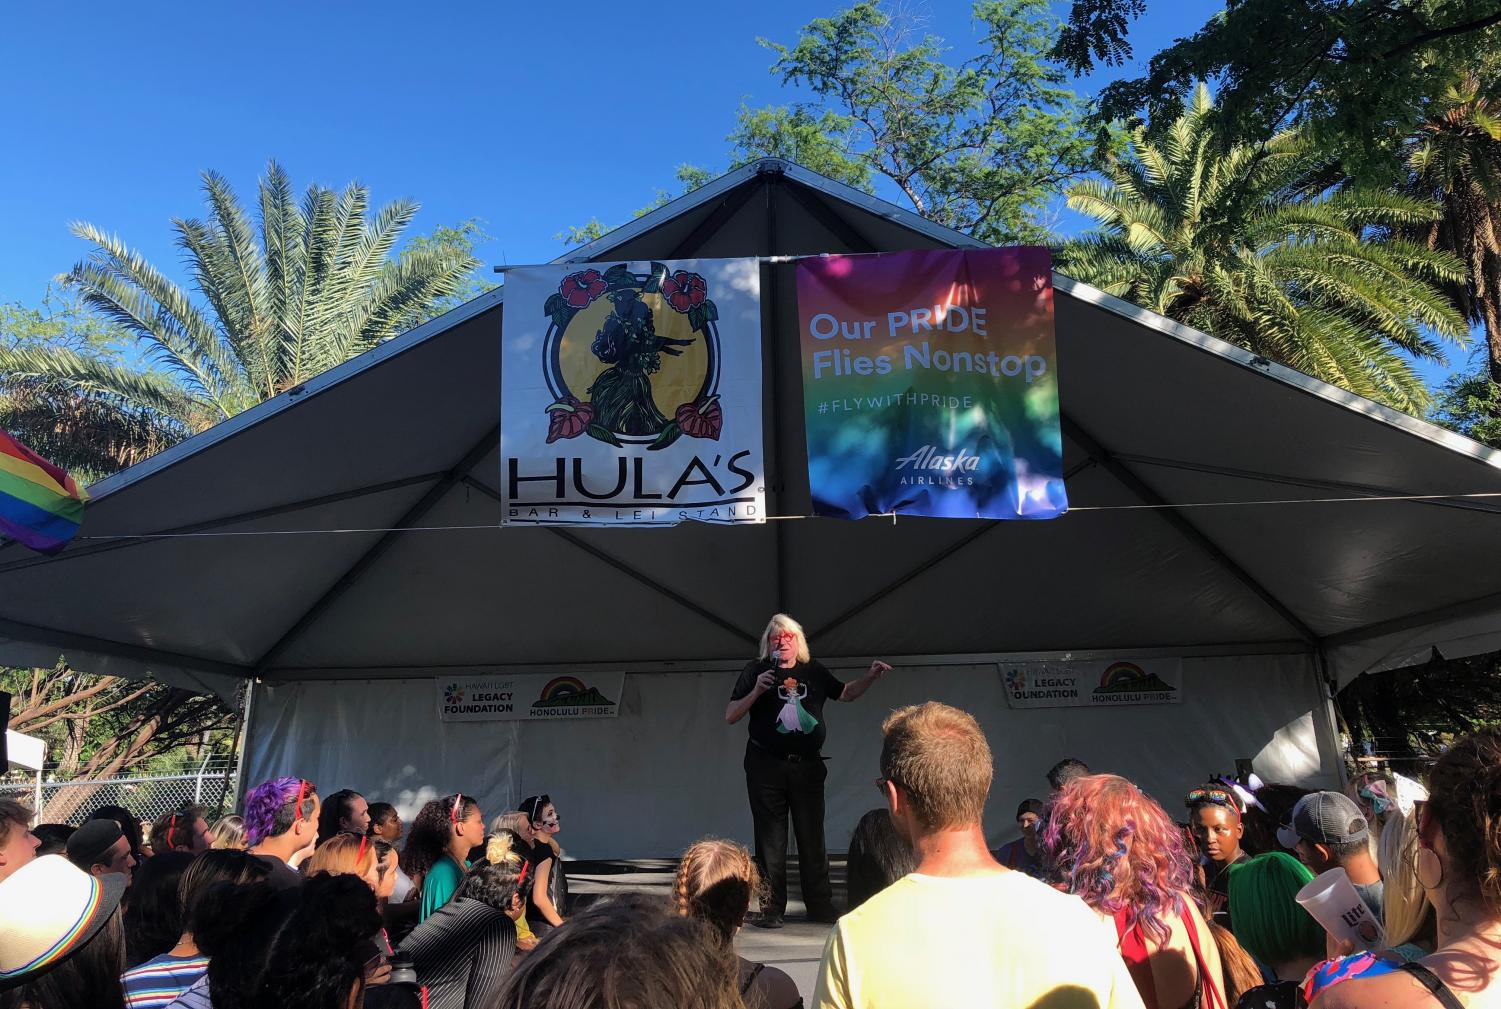 Openly+gay+Emmy+Award+winning+comedian%2C+songwriter+and+actor%2C+Bruce+Vilanch%2C+called+Hawaii+and+its+food+sophisticated+as+he+talked+on+stage+to+the+festival+audience.